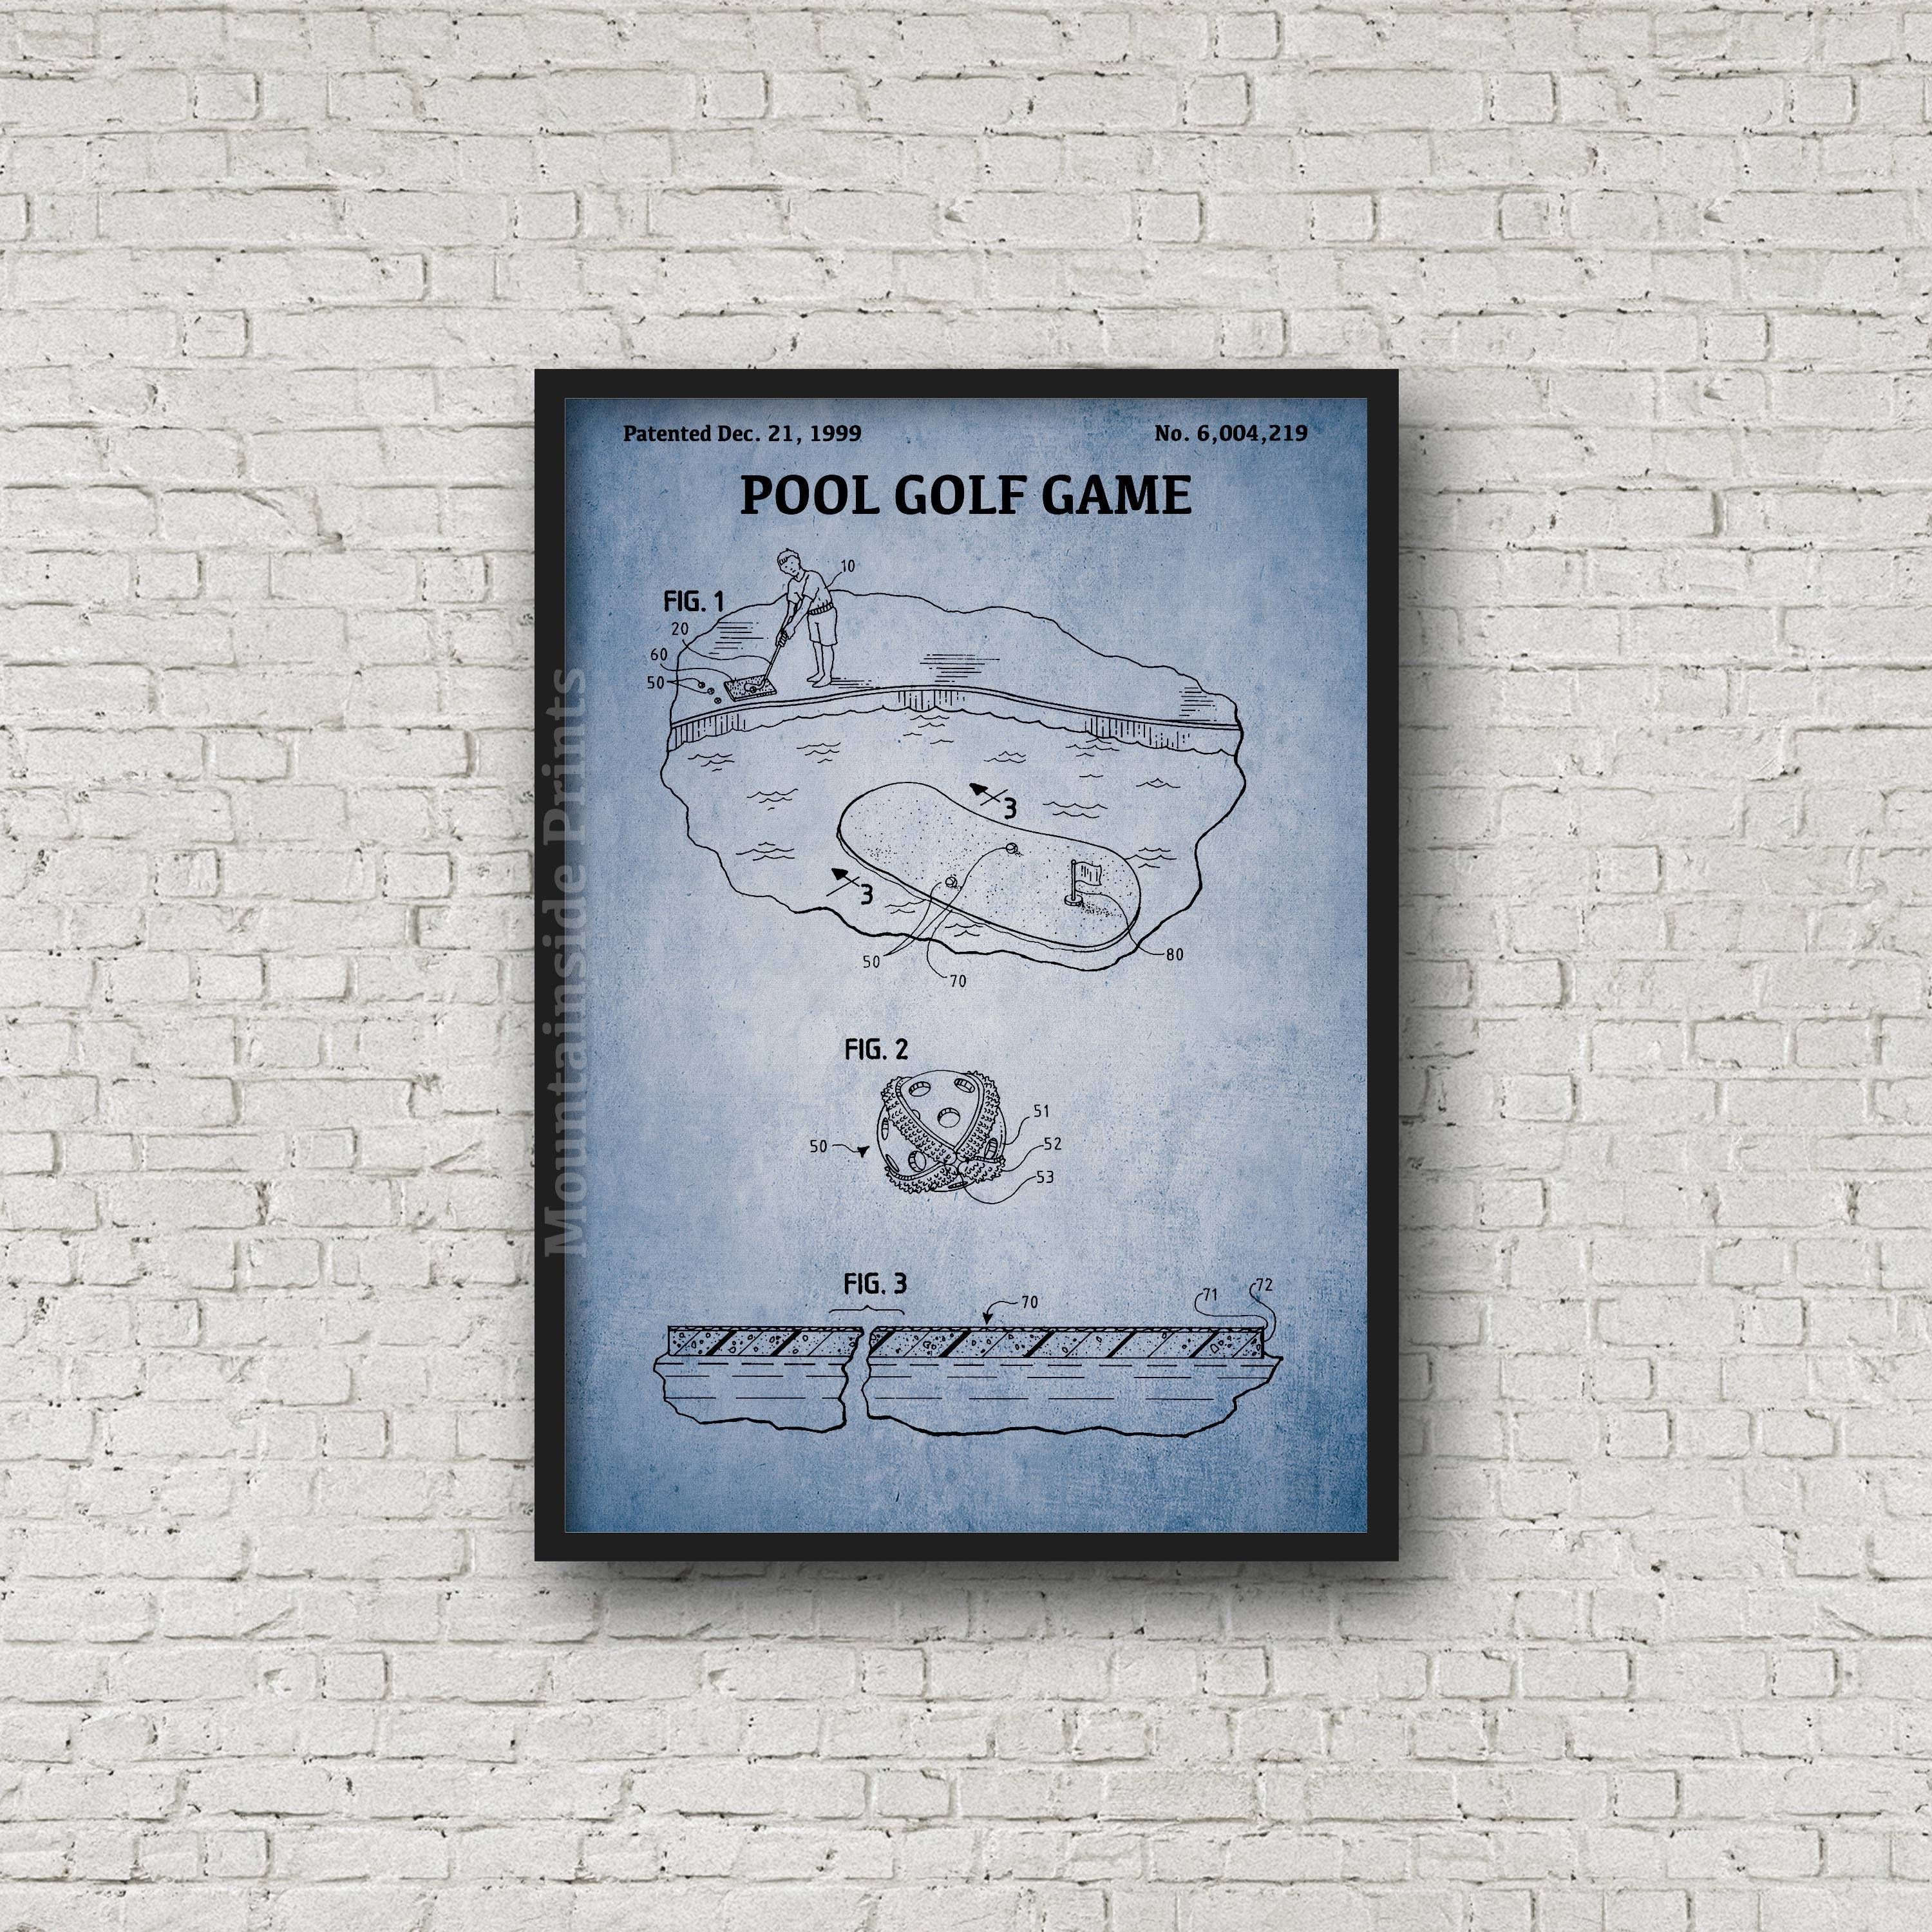 Pool golf game patent print pool golf game patent poster pool golf game patent print pool golf game patent poster blueprint art golfing gift blueprint poster pool golf patent art malvernweather Image collections